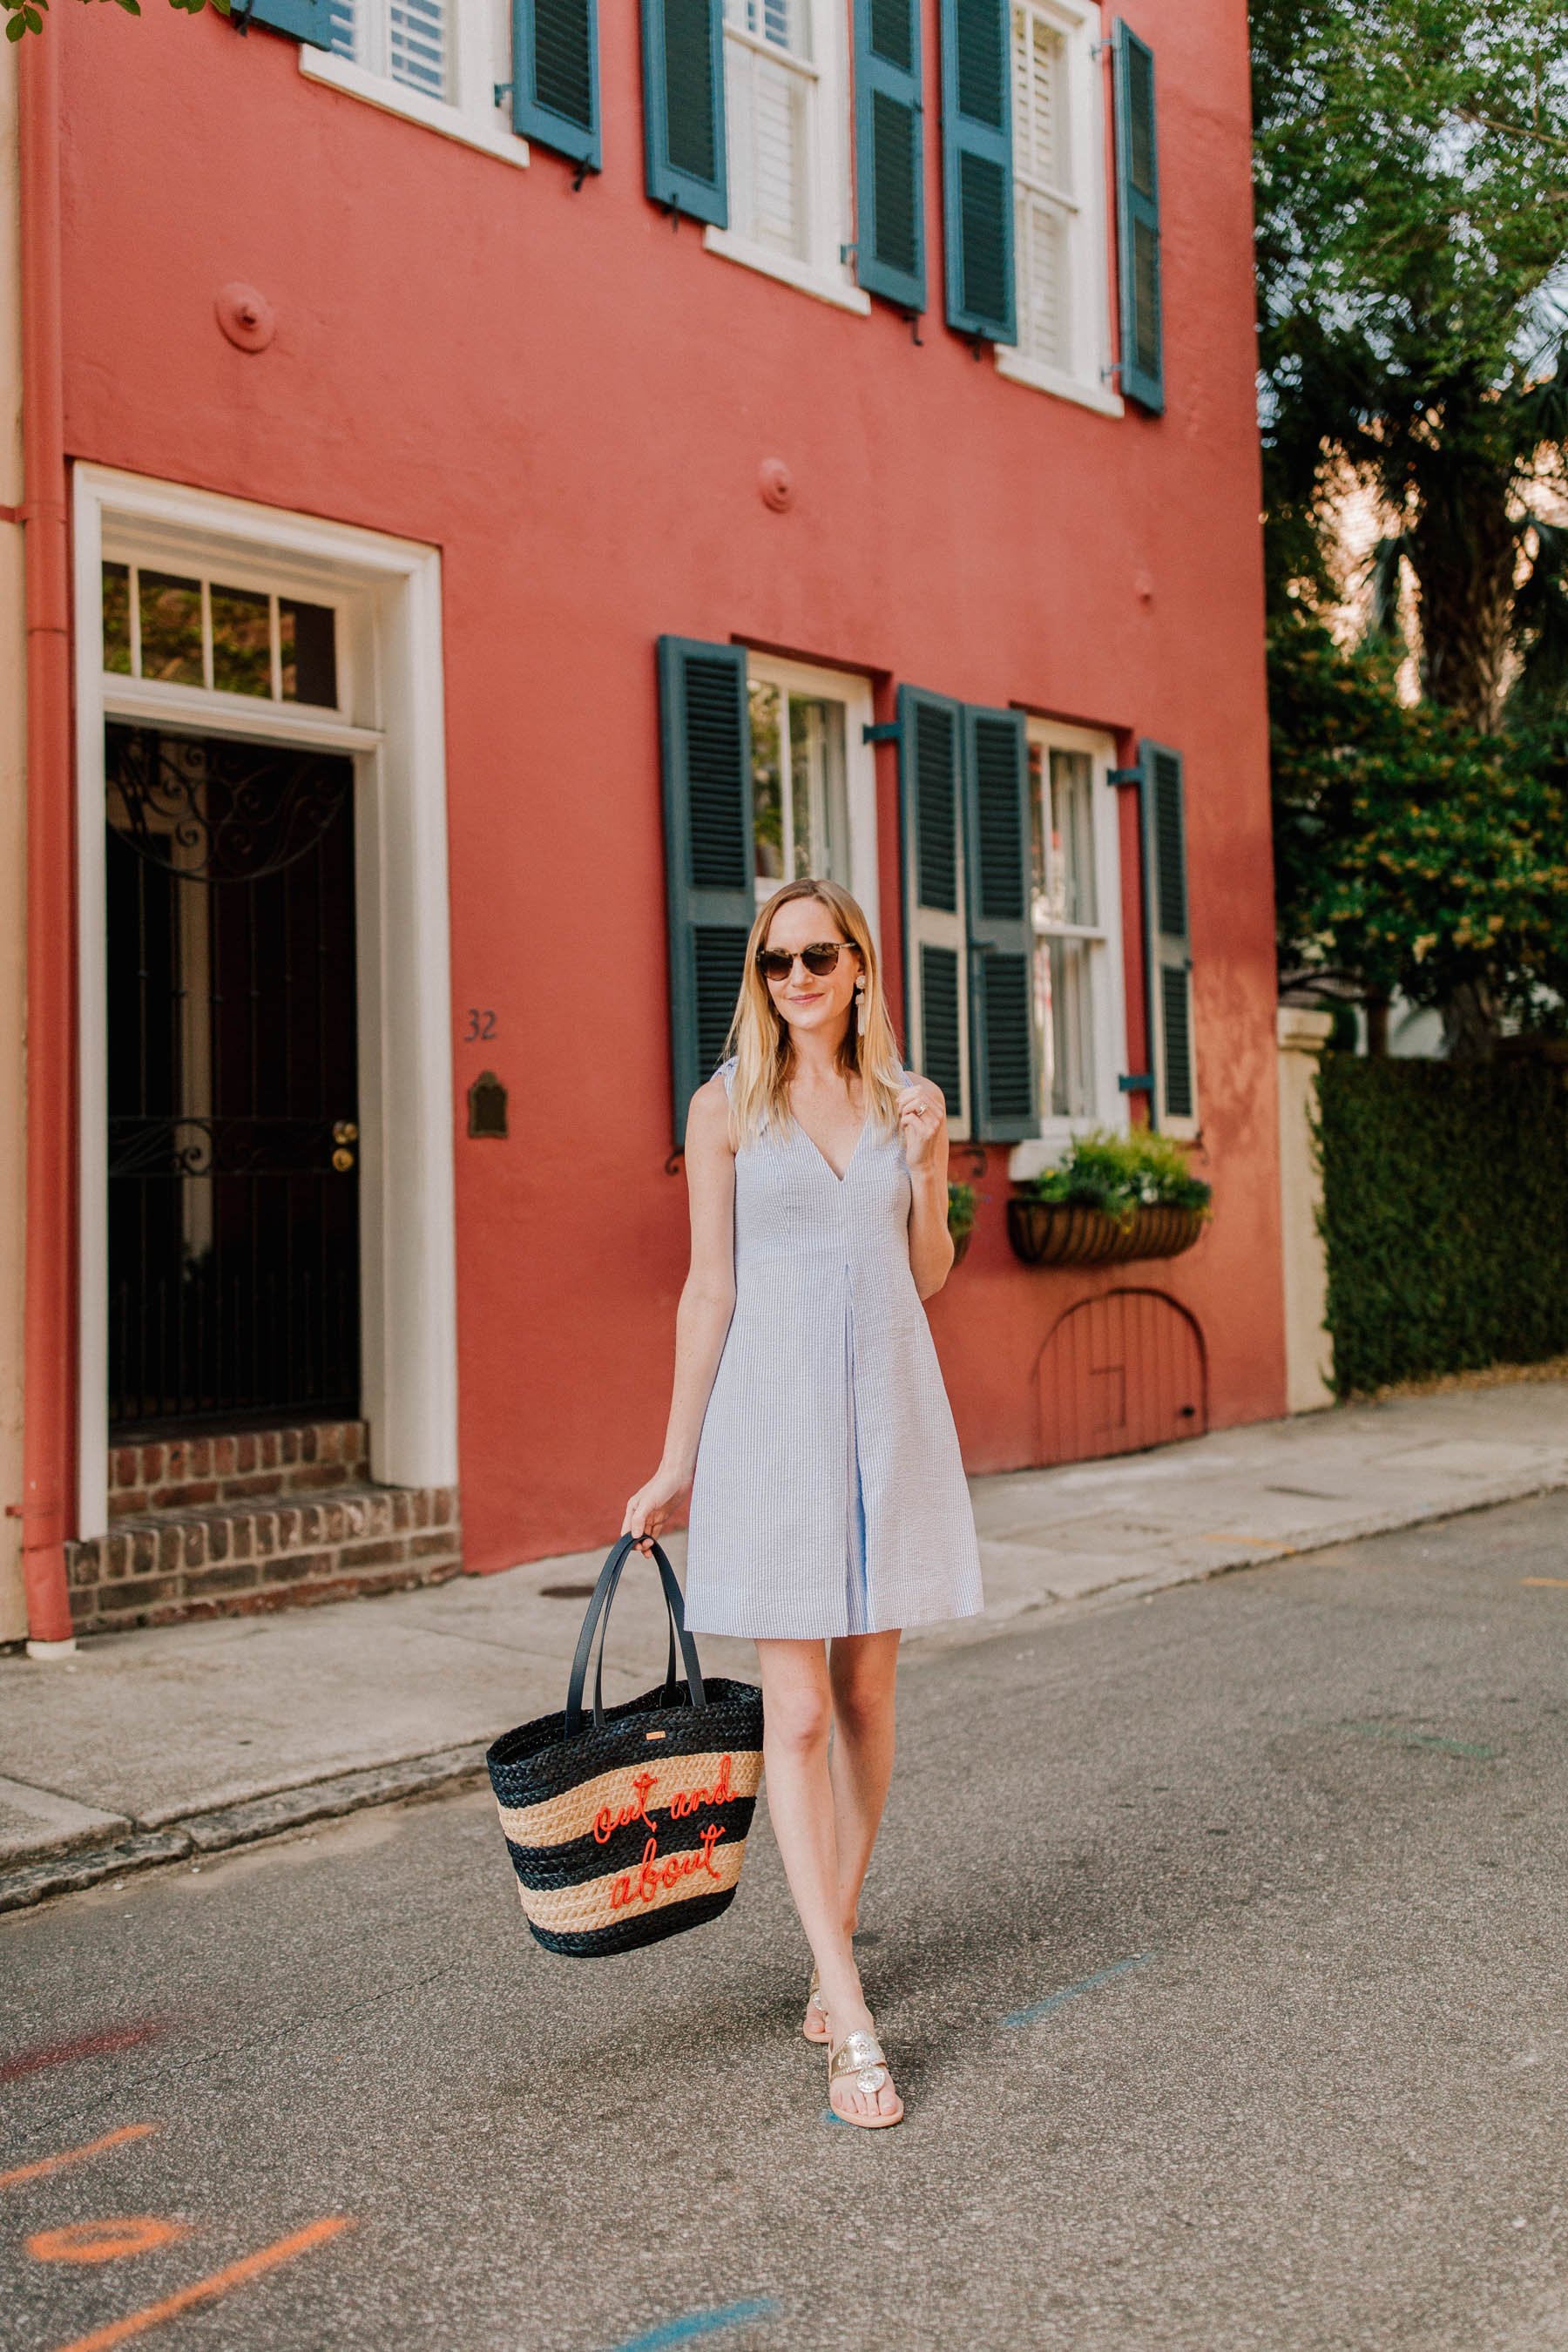 Stress Free Preppy Travel Outfit: Kelly in the City